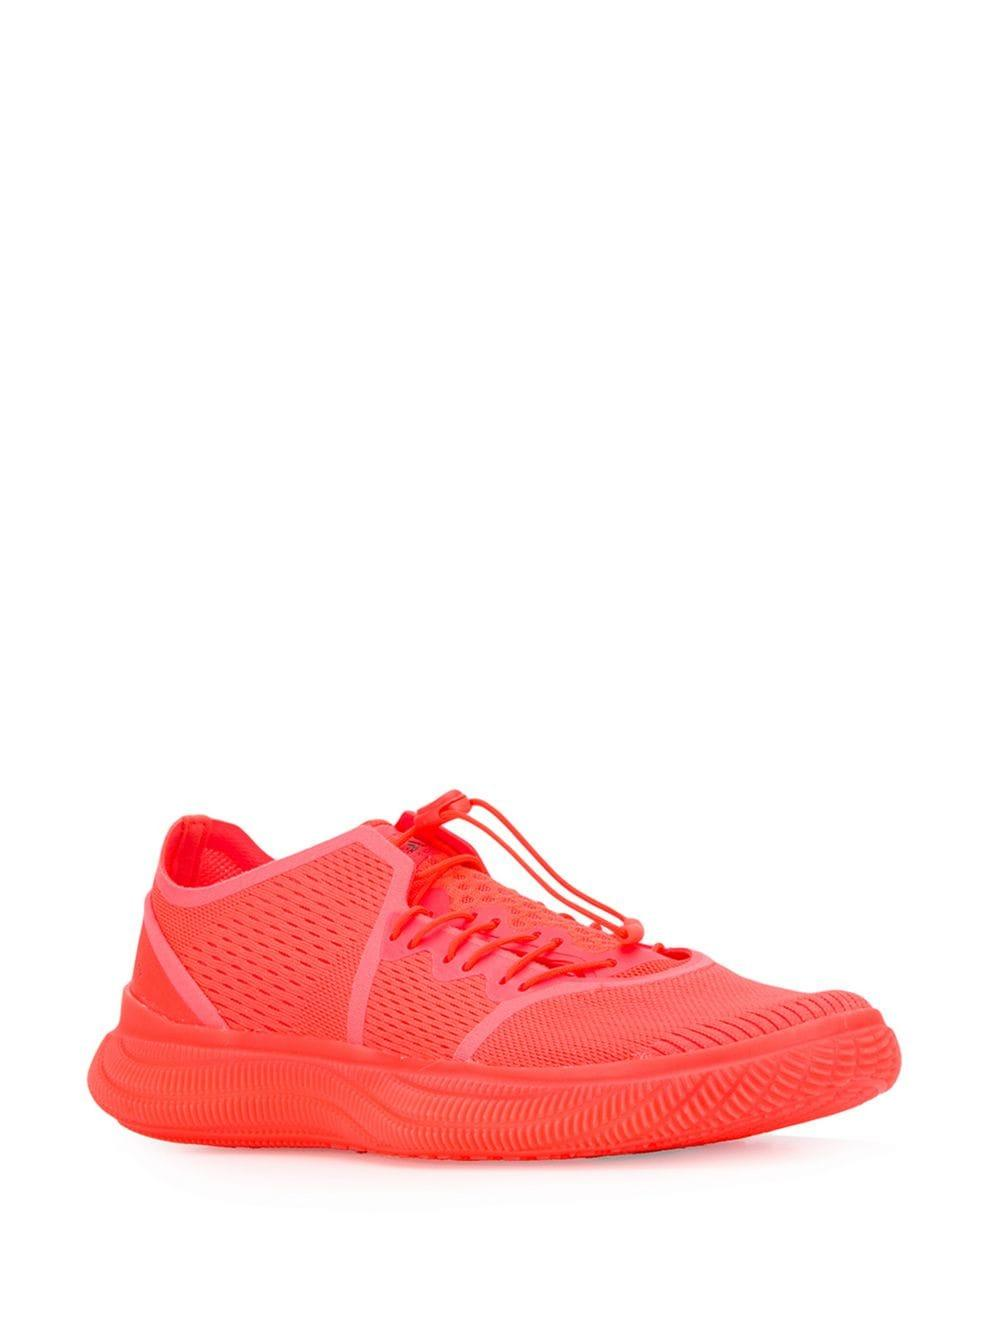 4a87e02f3b9a Lyst - adidas By Stella McCartney Pureboost Sneakers in Red